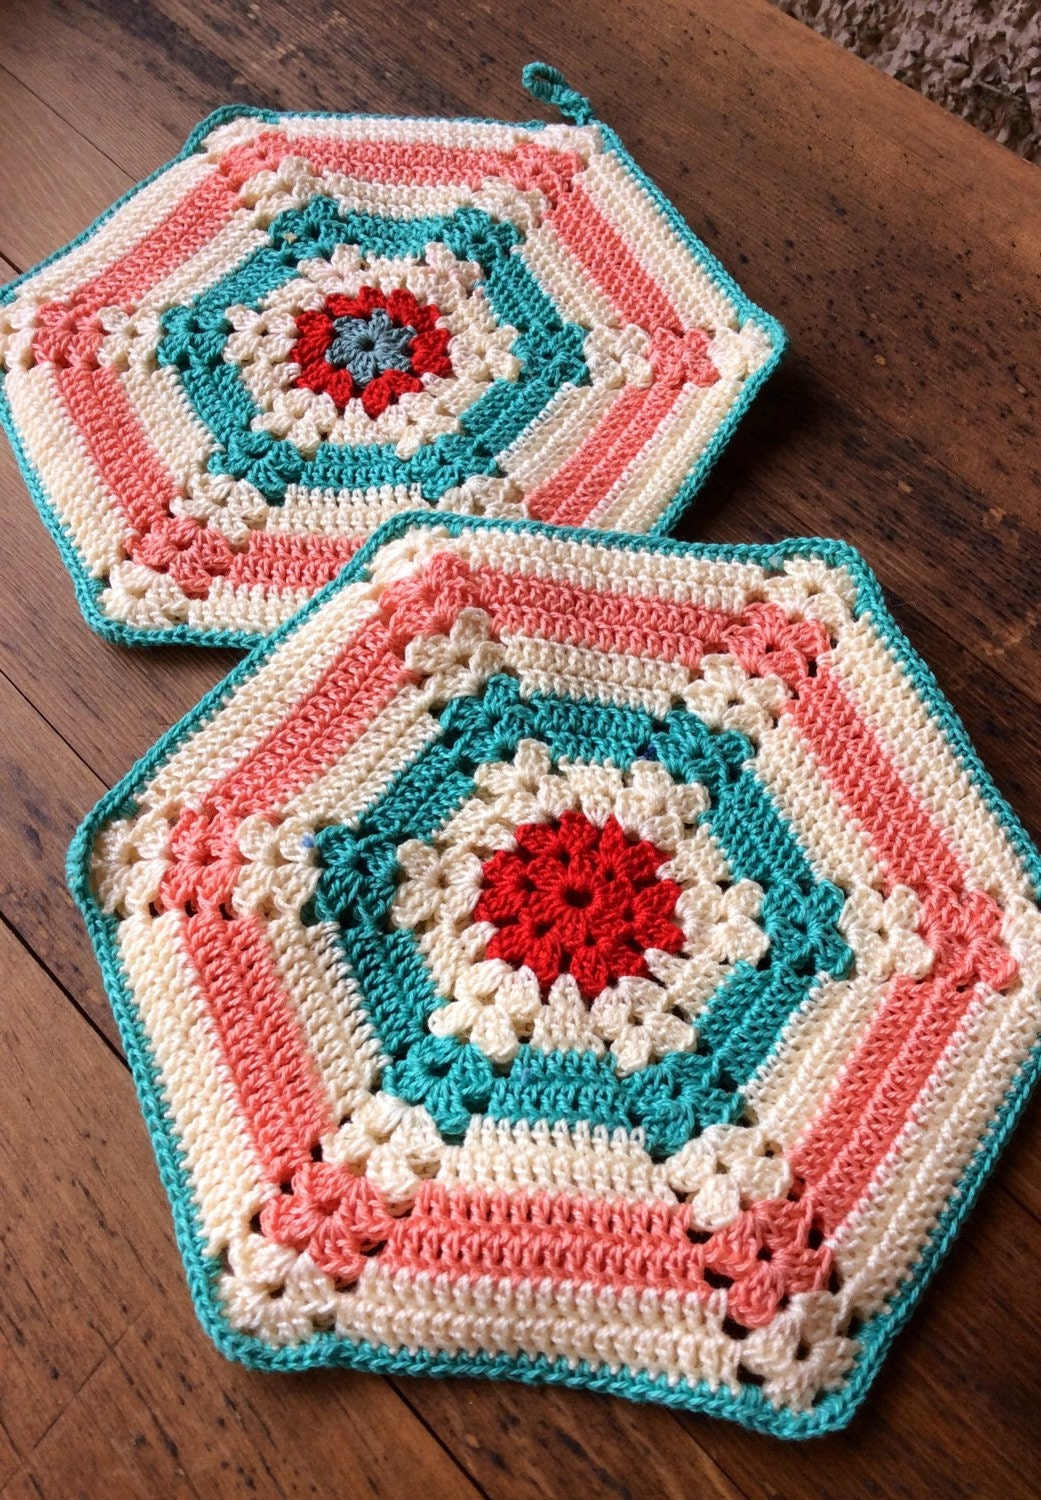 Crocheted Vintage Pot Holder Set Of Two In Teal And Peach